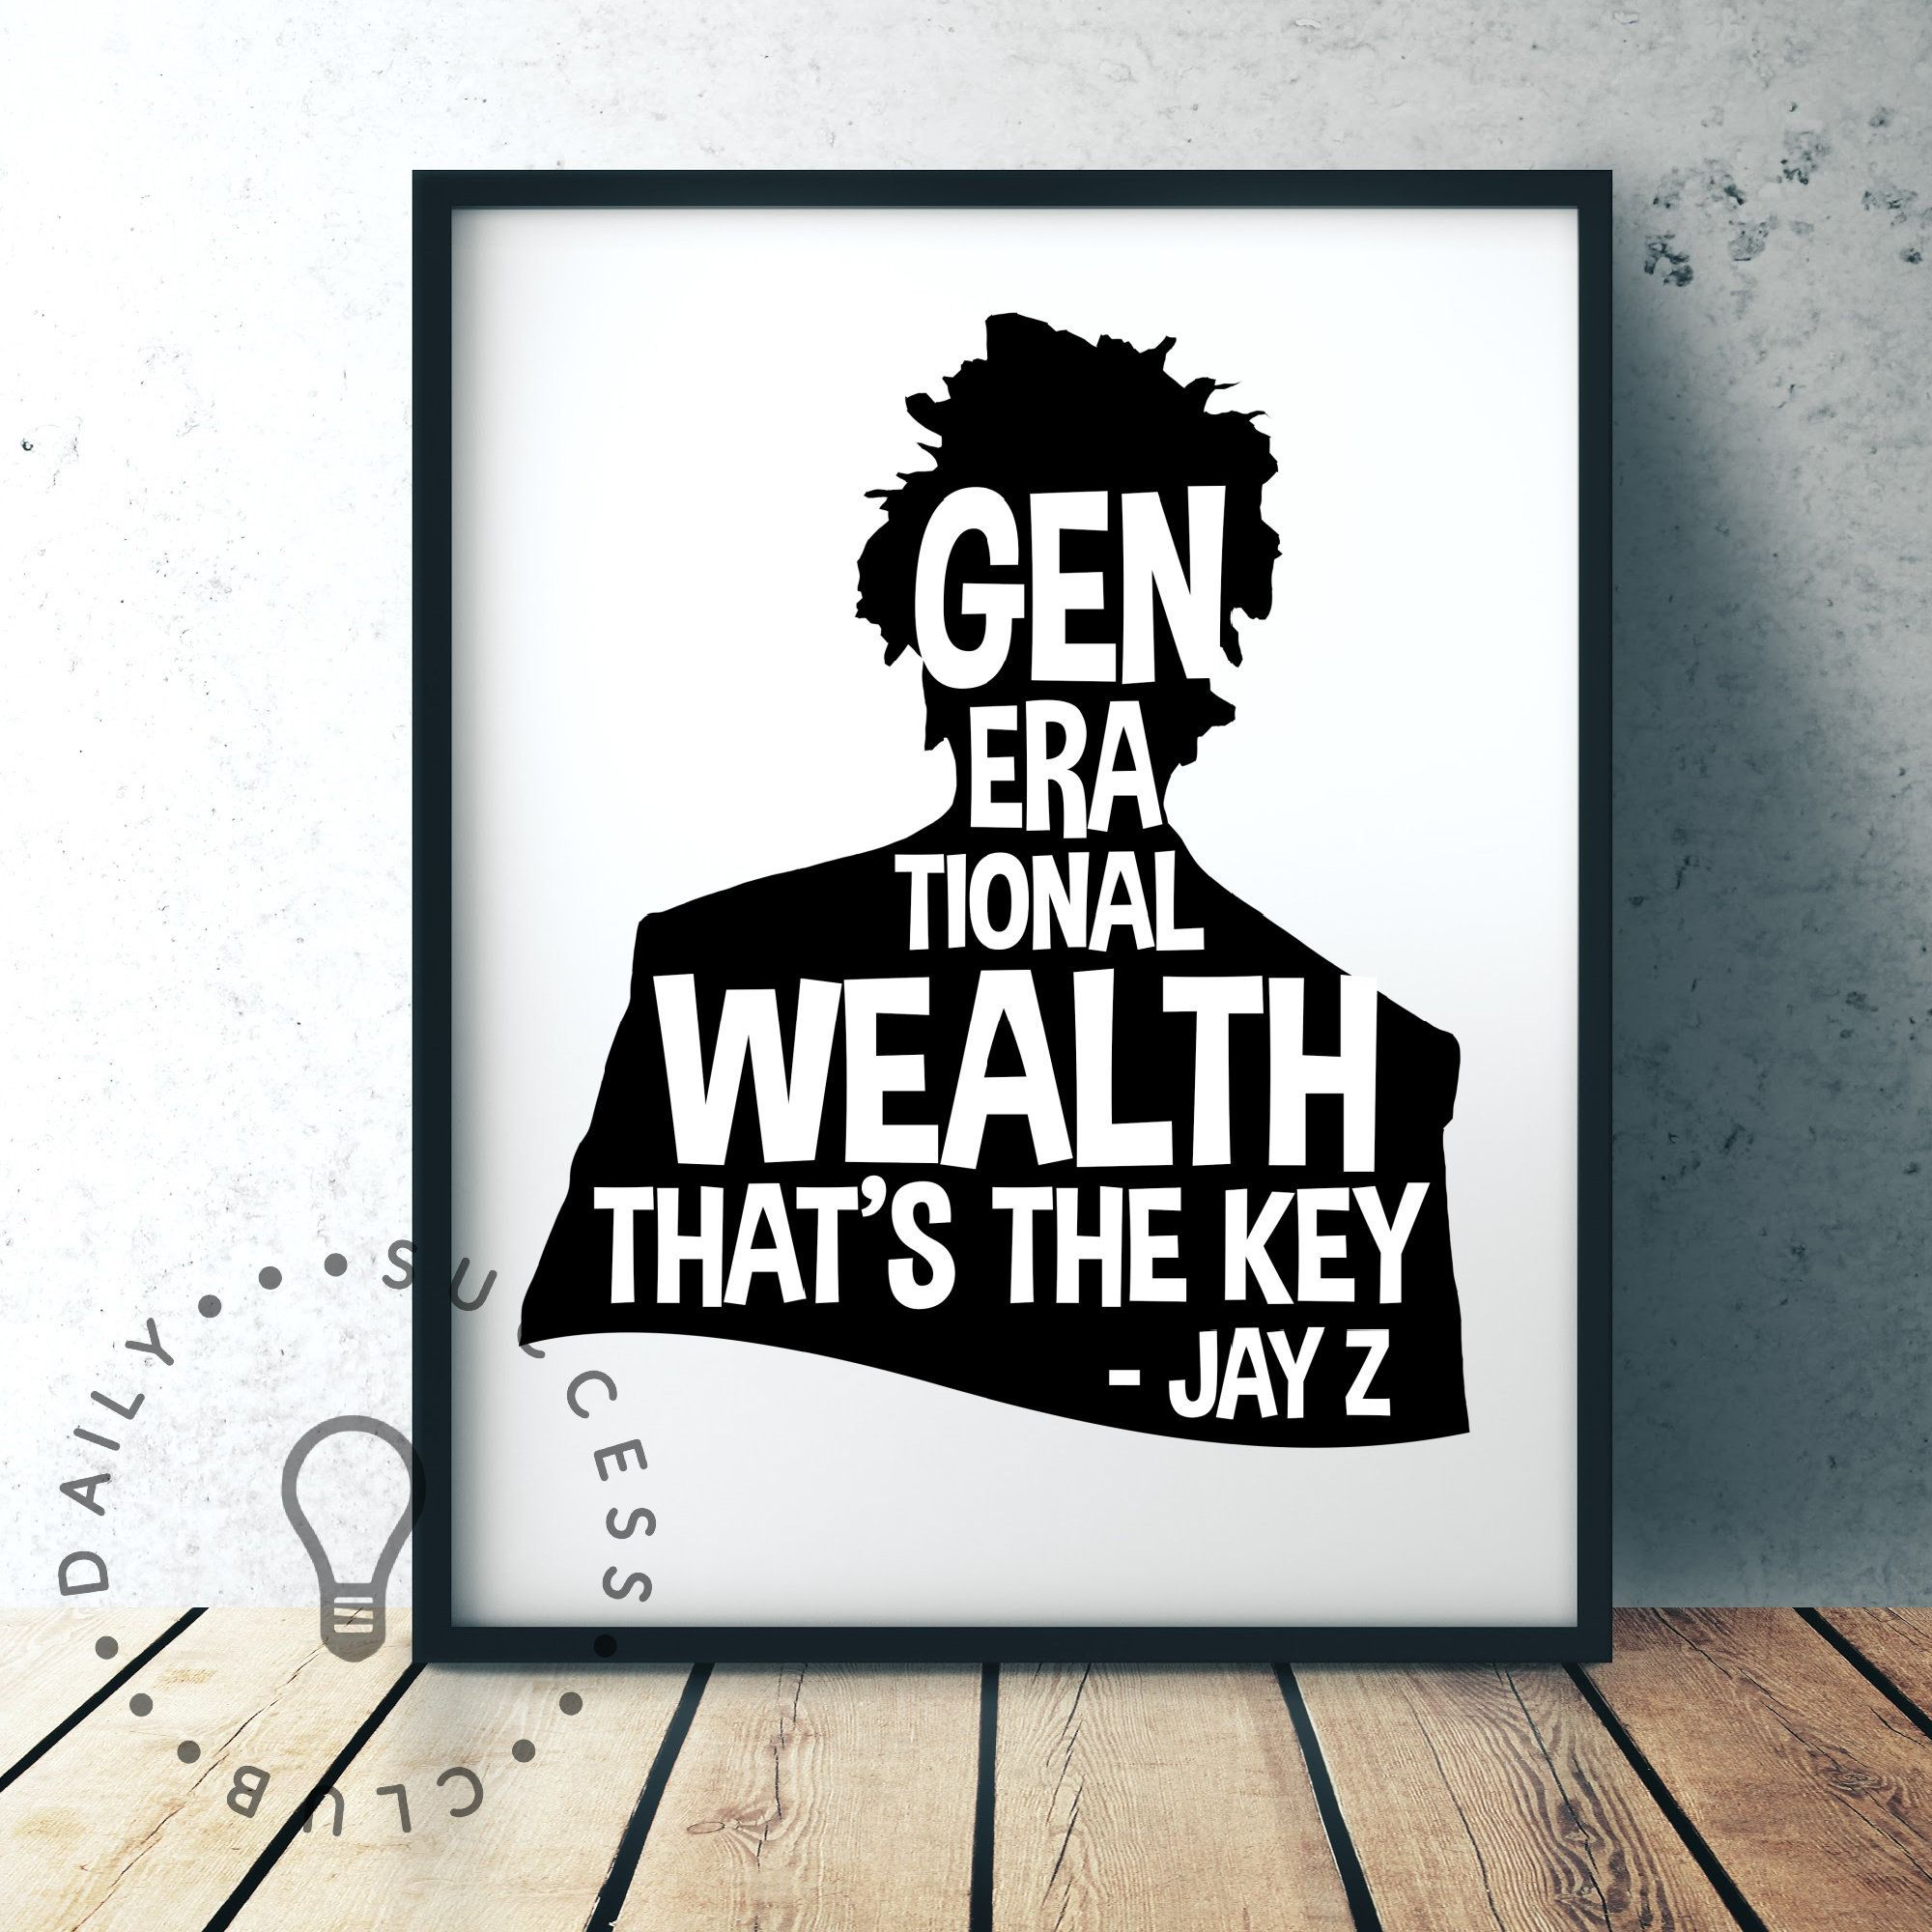 Jay Z Poster Rapper Poster Hip Hop Poster Rap Lyrics Wall Etsy Hip Hop Poster America Art Rap Lyrics